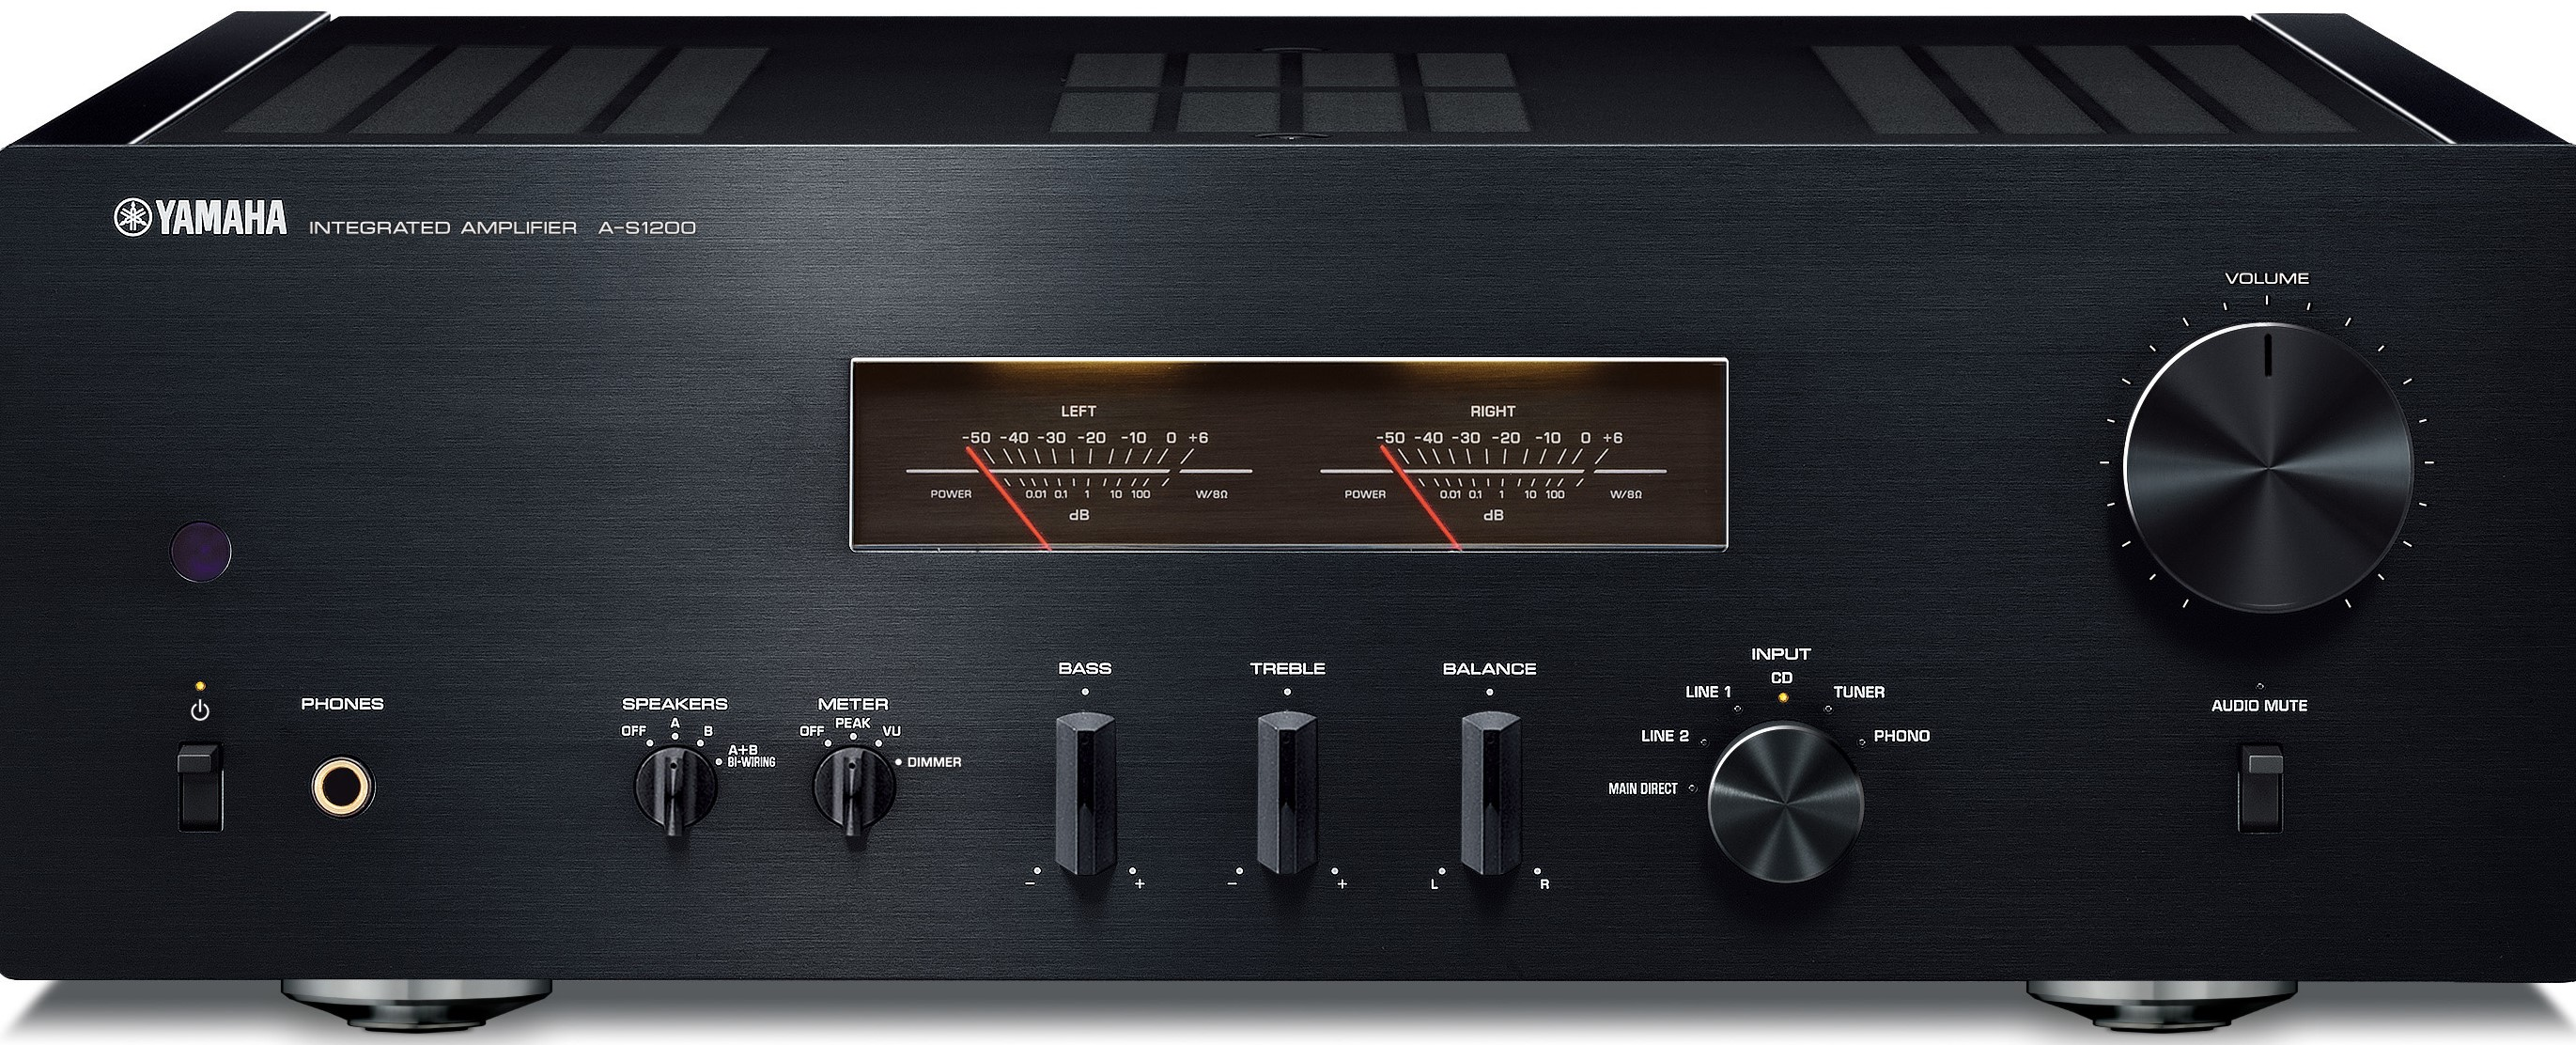 Amplifier with knobs and switches and a center display.